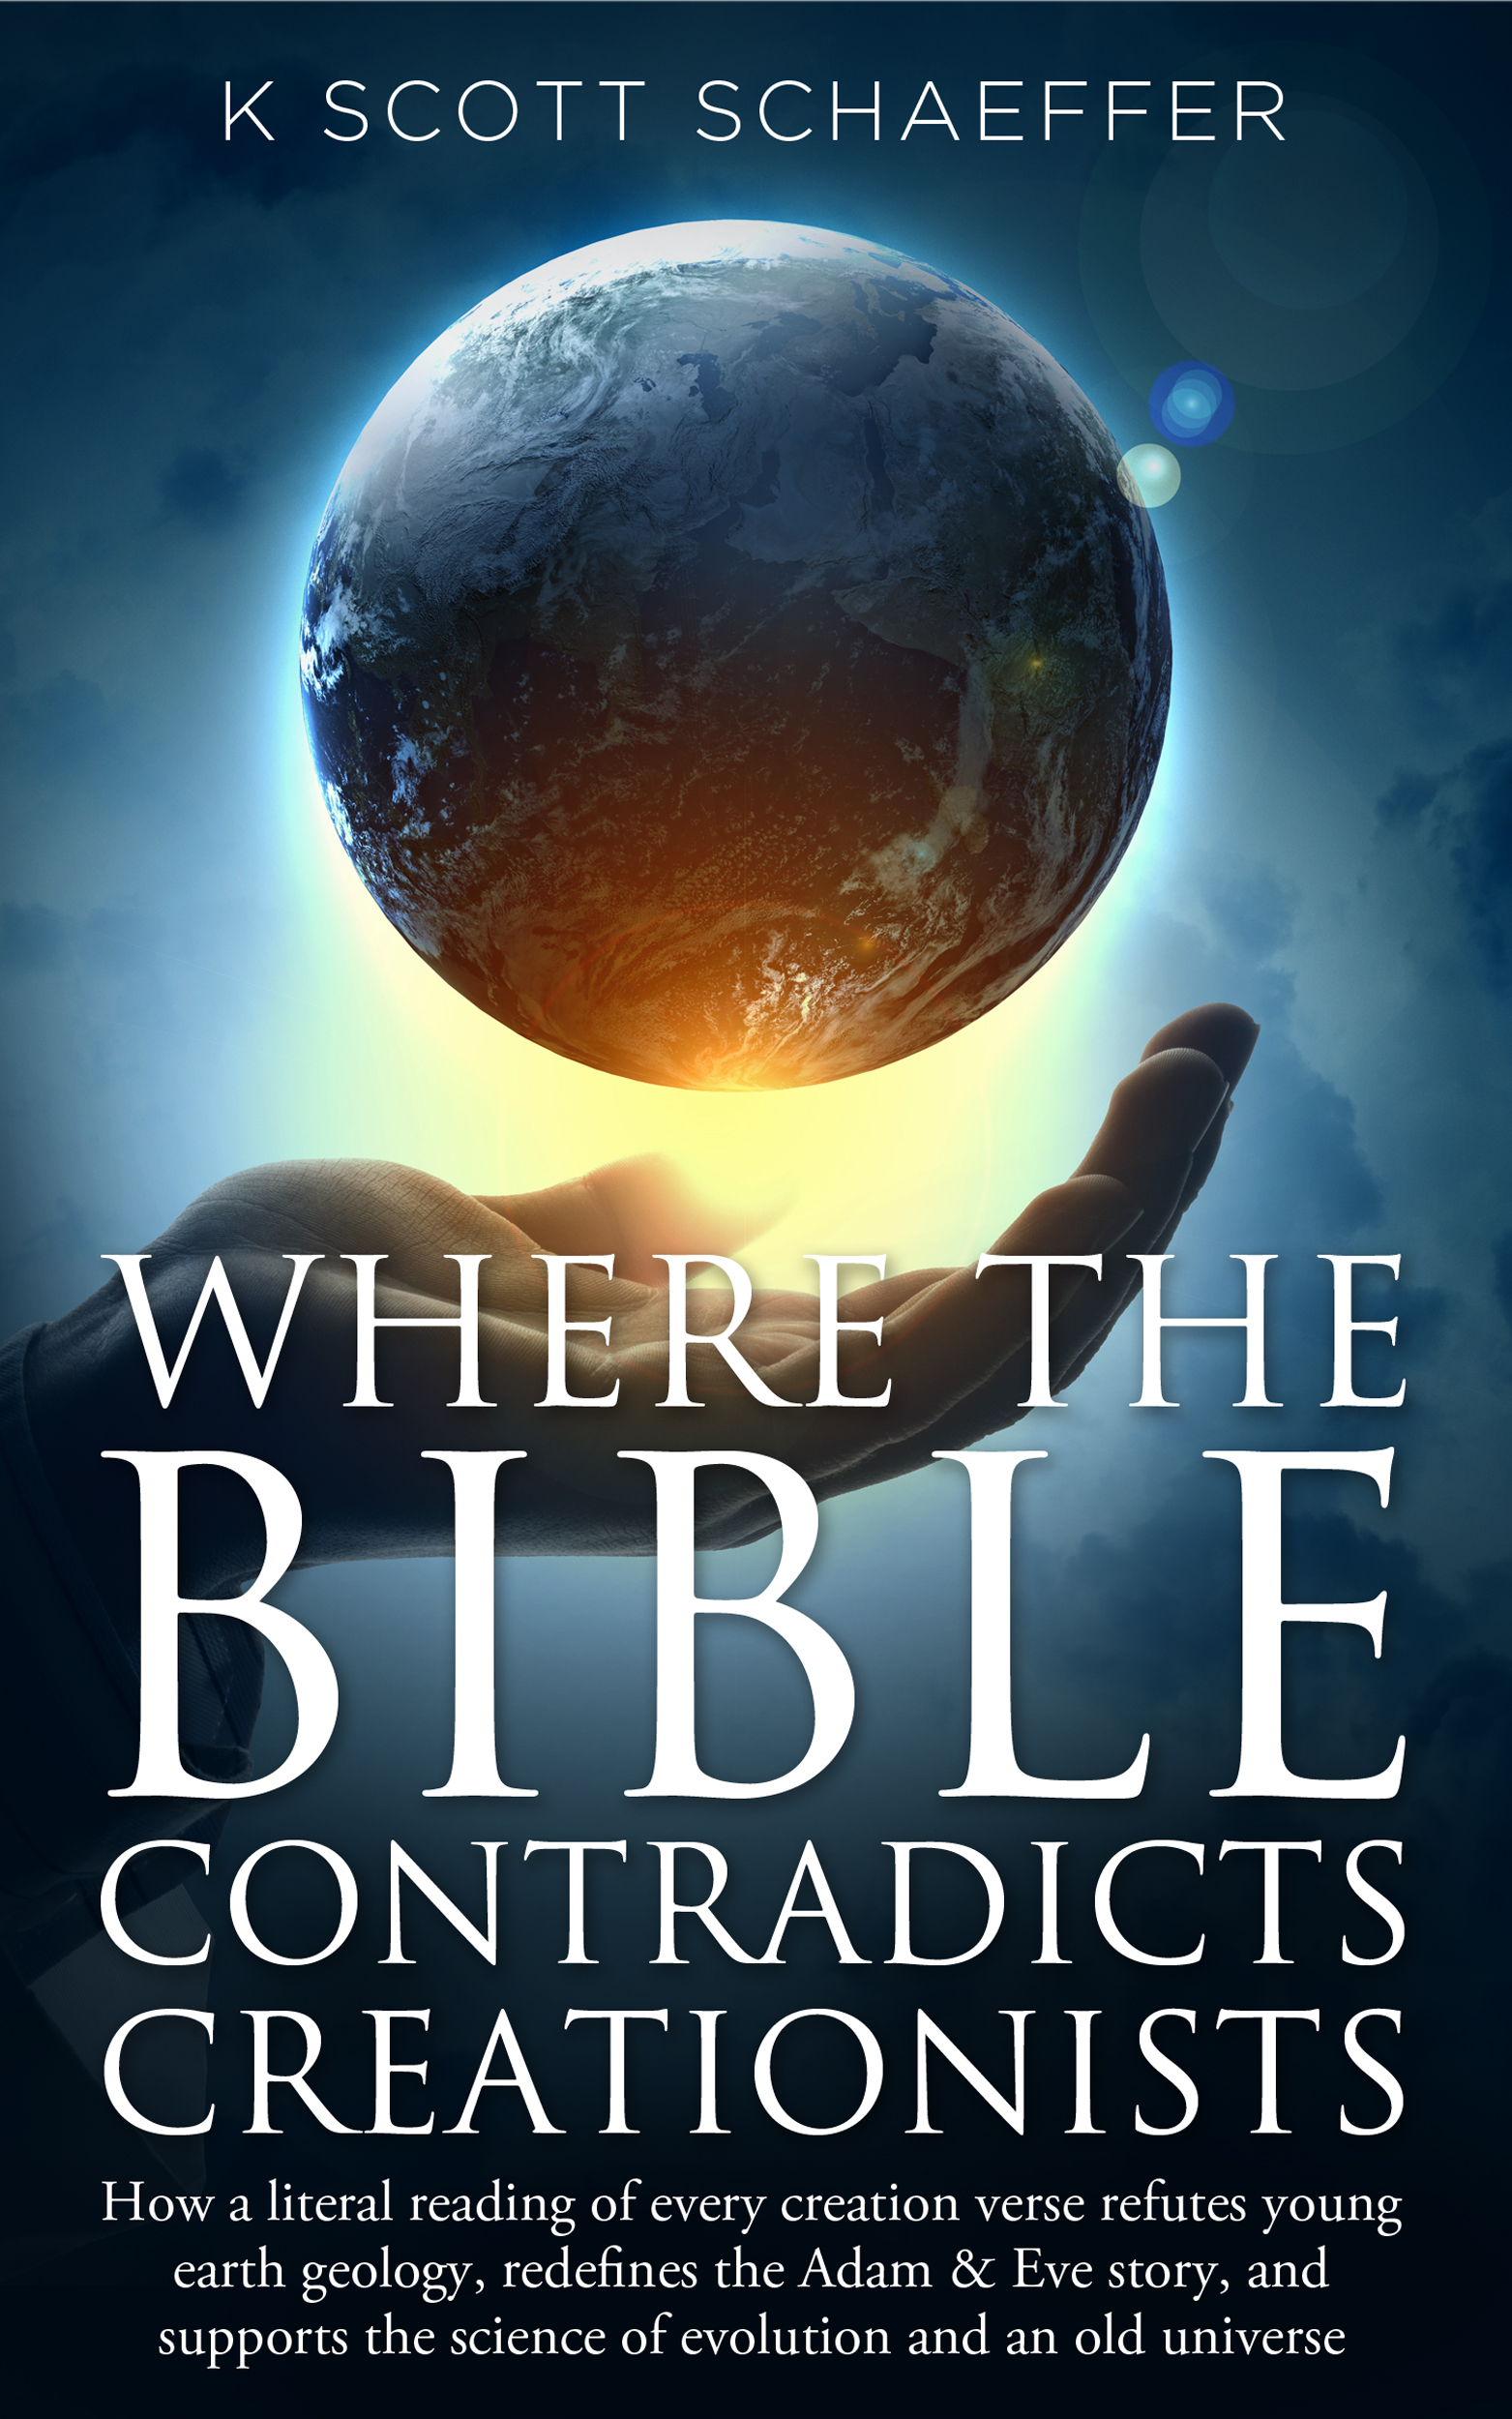 Where the Bible Contradicts Creationists